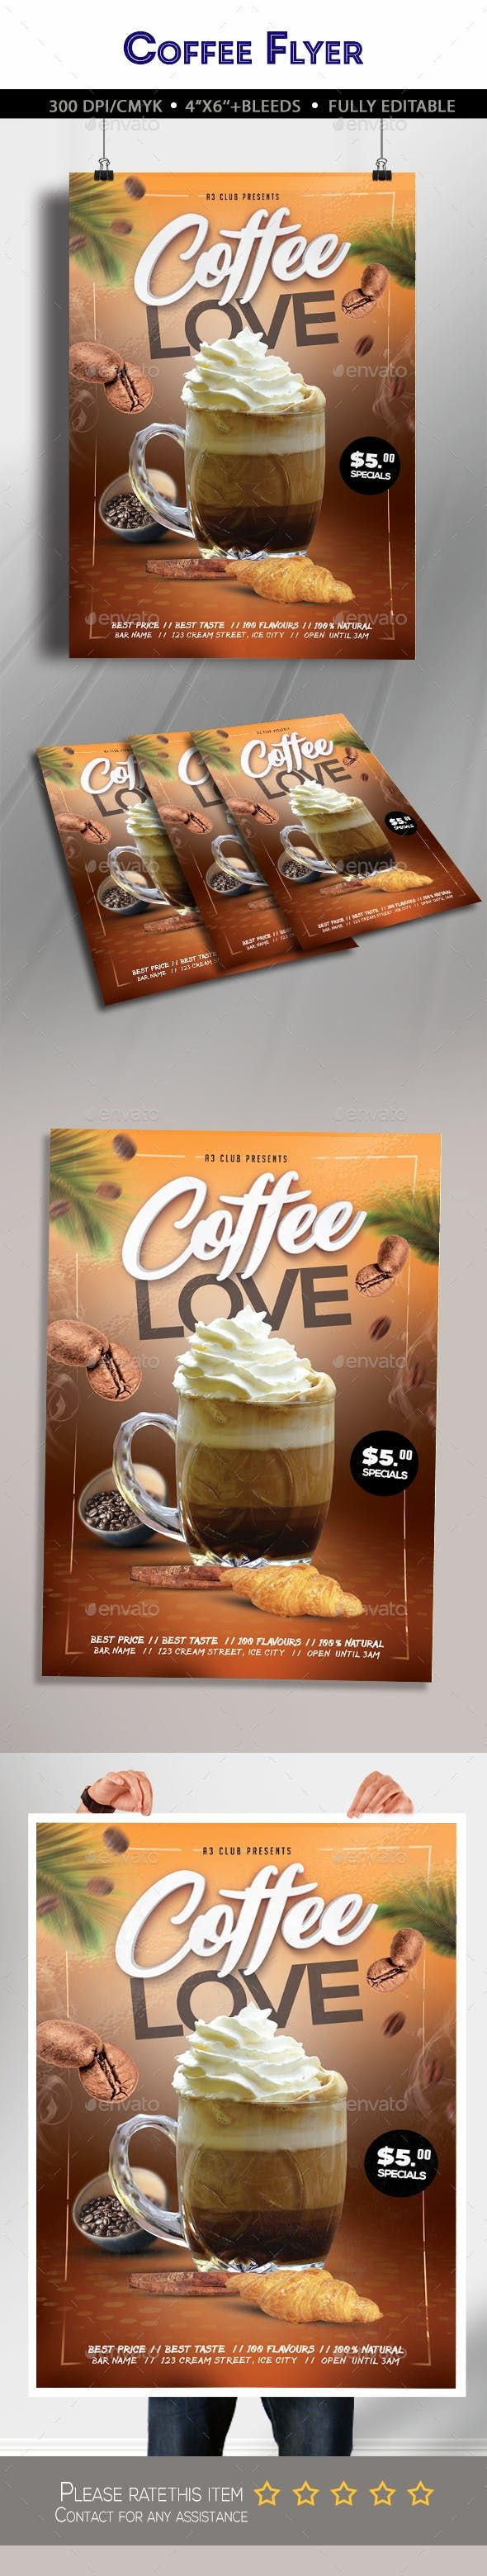 Free Vector | Coffee shop flyer square |New Coffee Shop Flyer